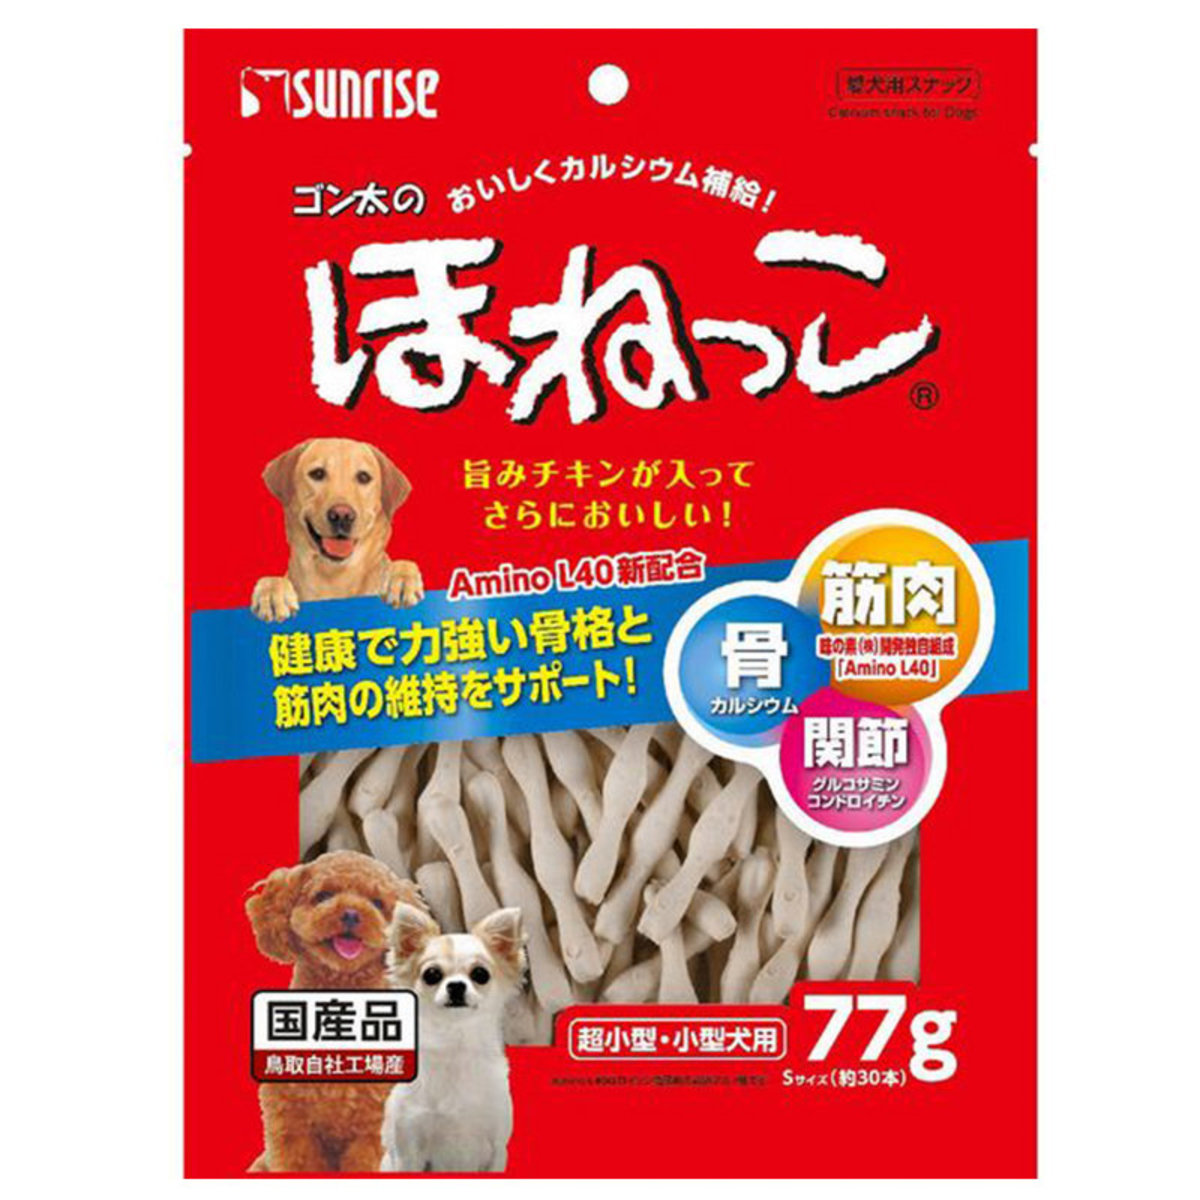 SSB-012 Calcium snack for Dogs S 77g